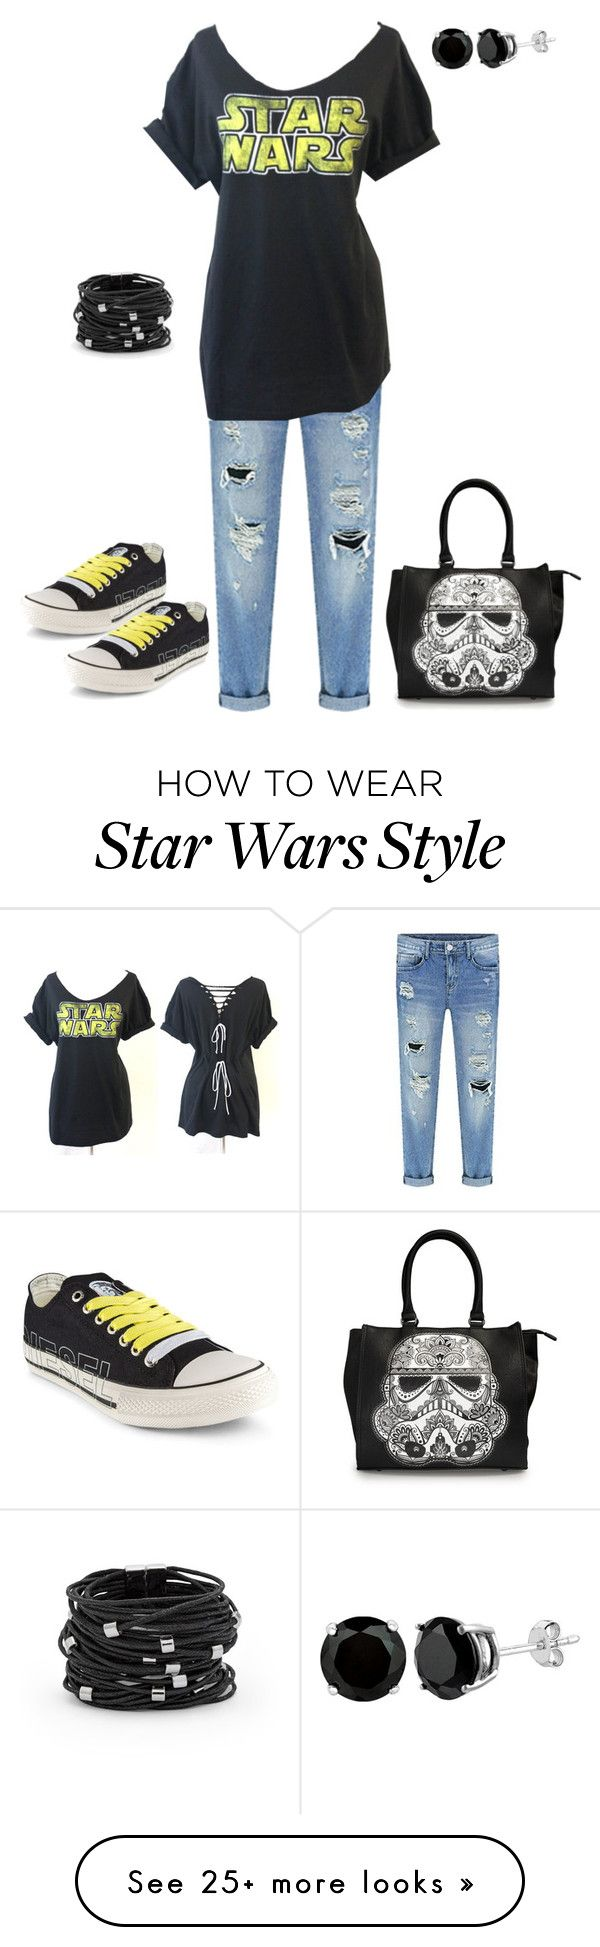 """""""Star Wars Caz"""" by guliverlouise on Polyvore featuring Diesel, Loungefly and Chico's"""